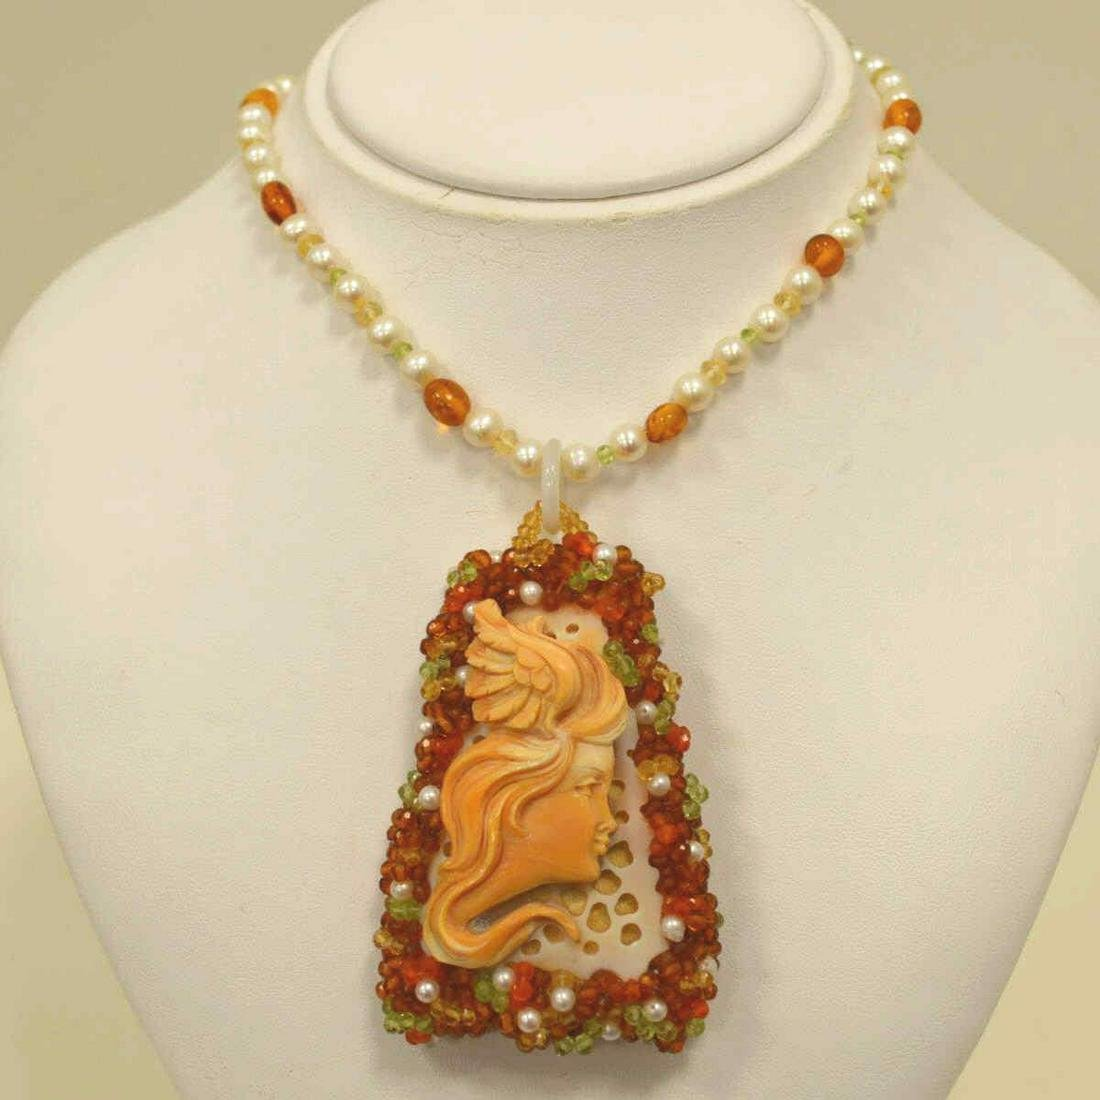 Carved cameo necklace by Carada